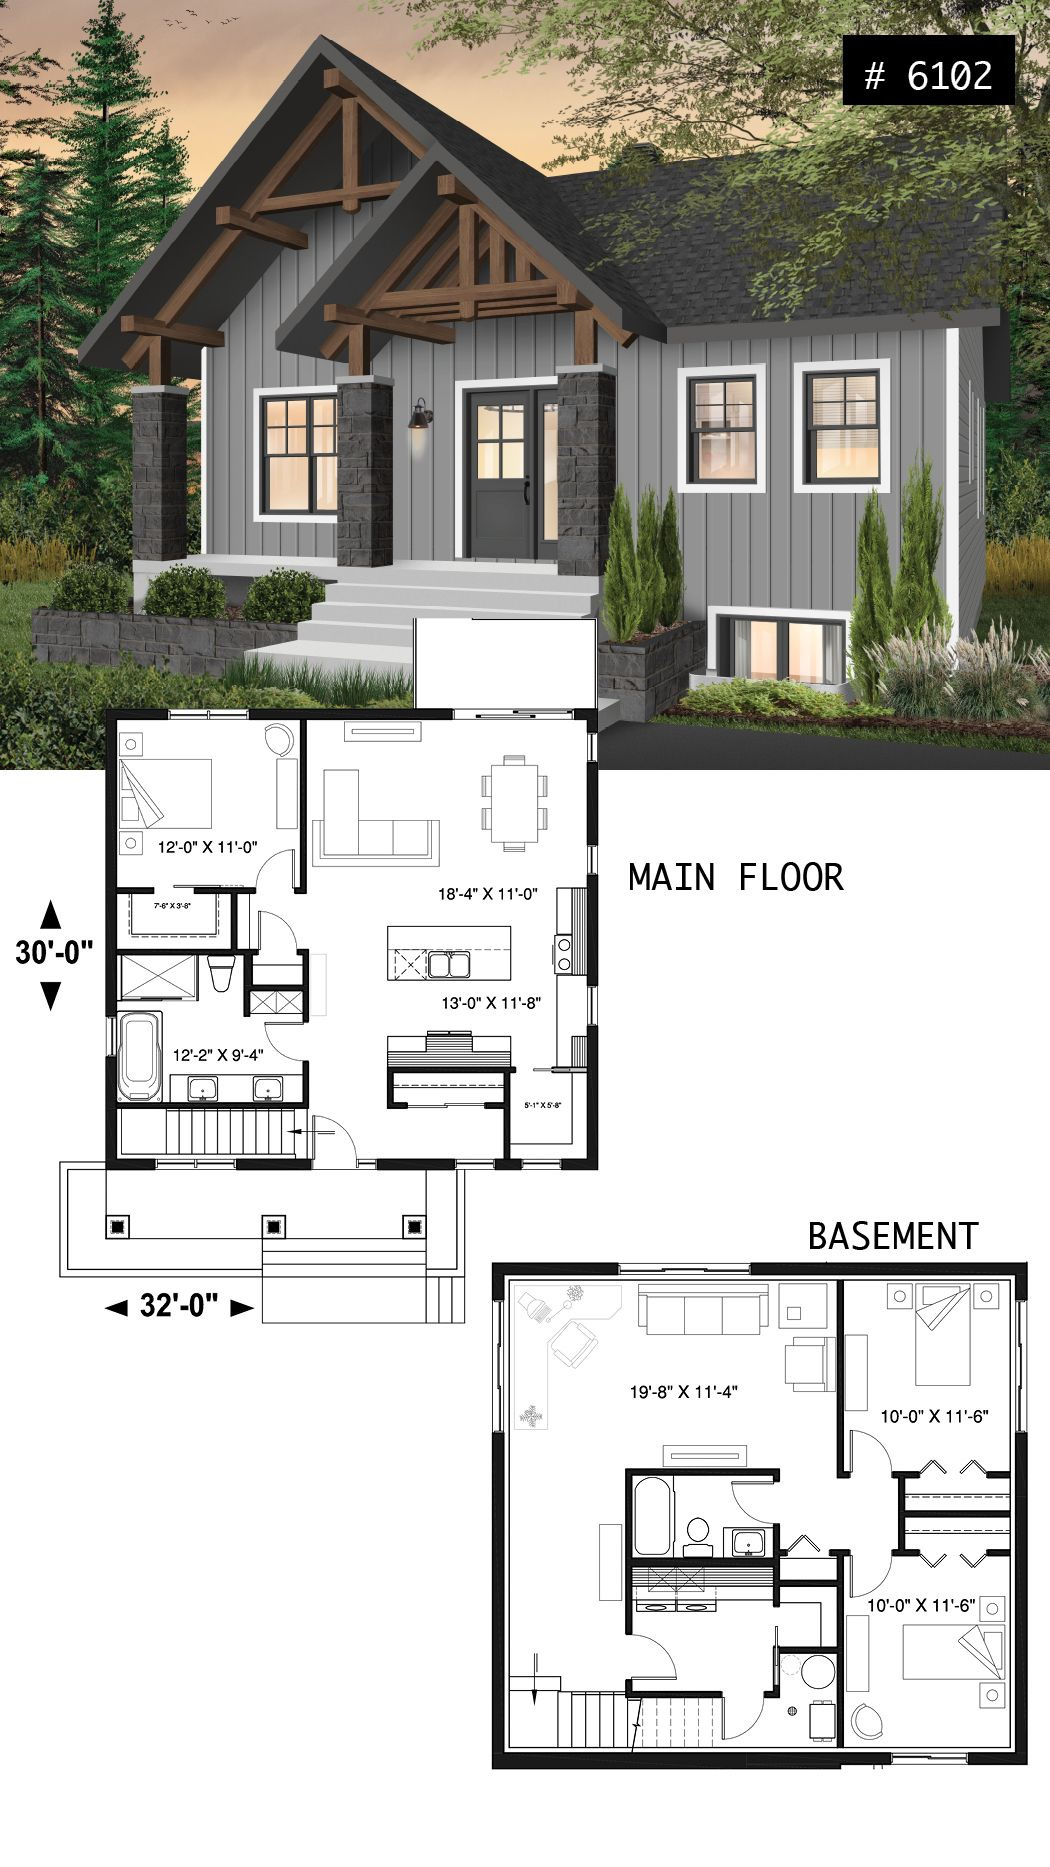 Small Houses Designs and Plans Inspirational House Plan nordika No 6102